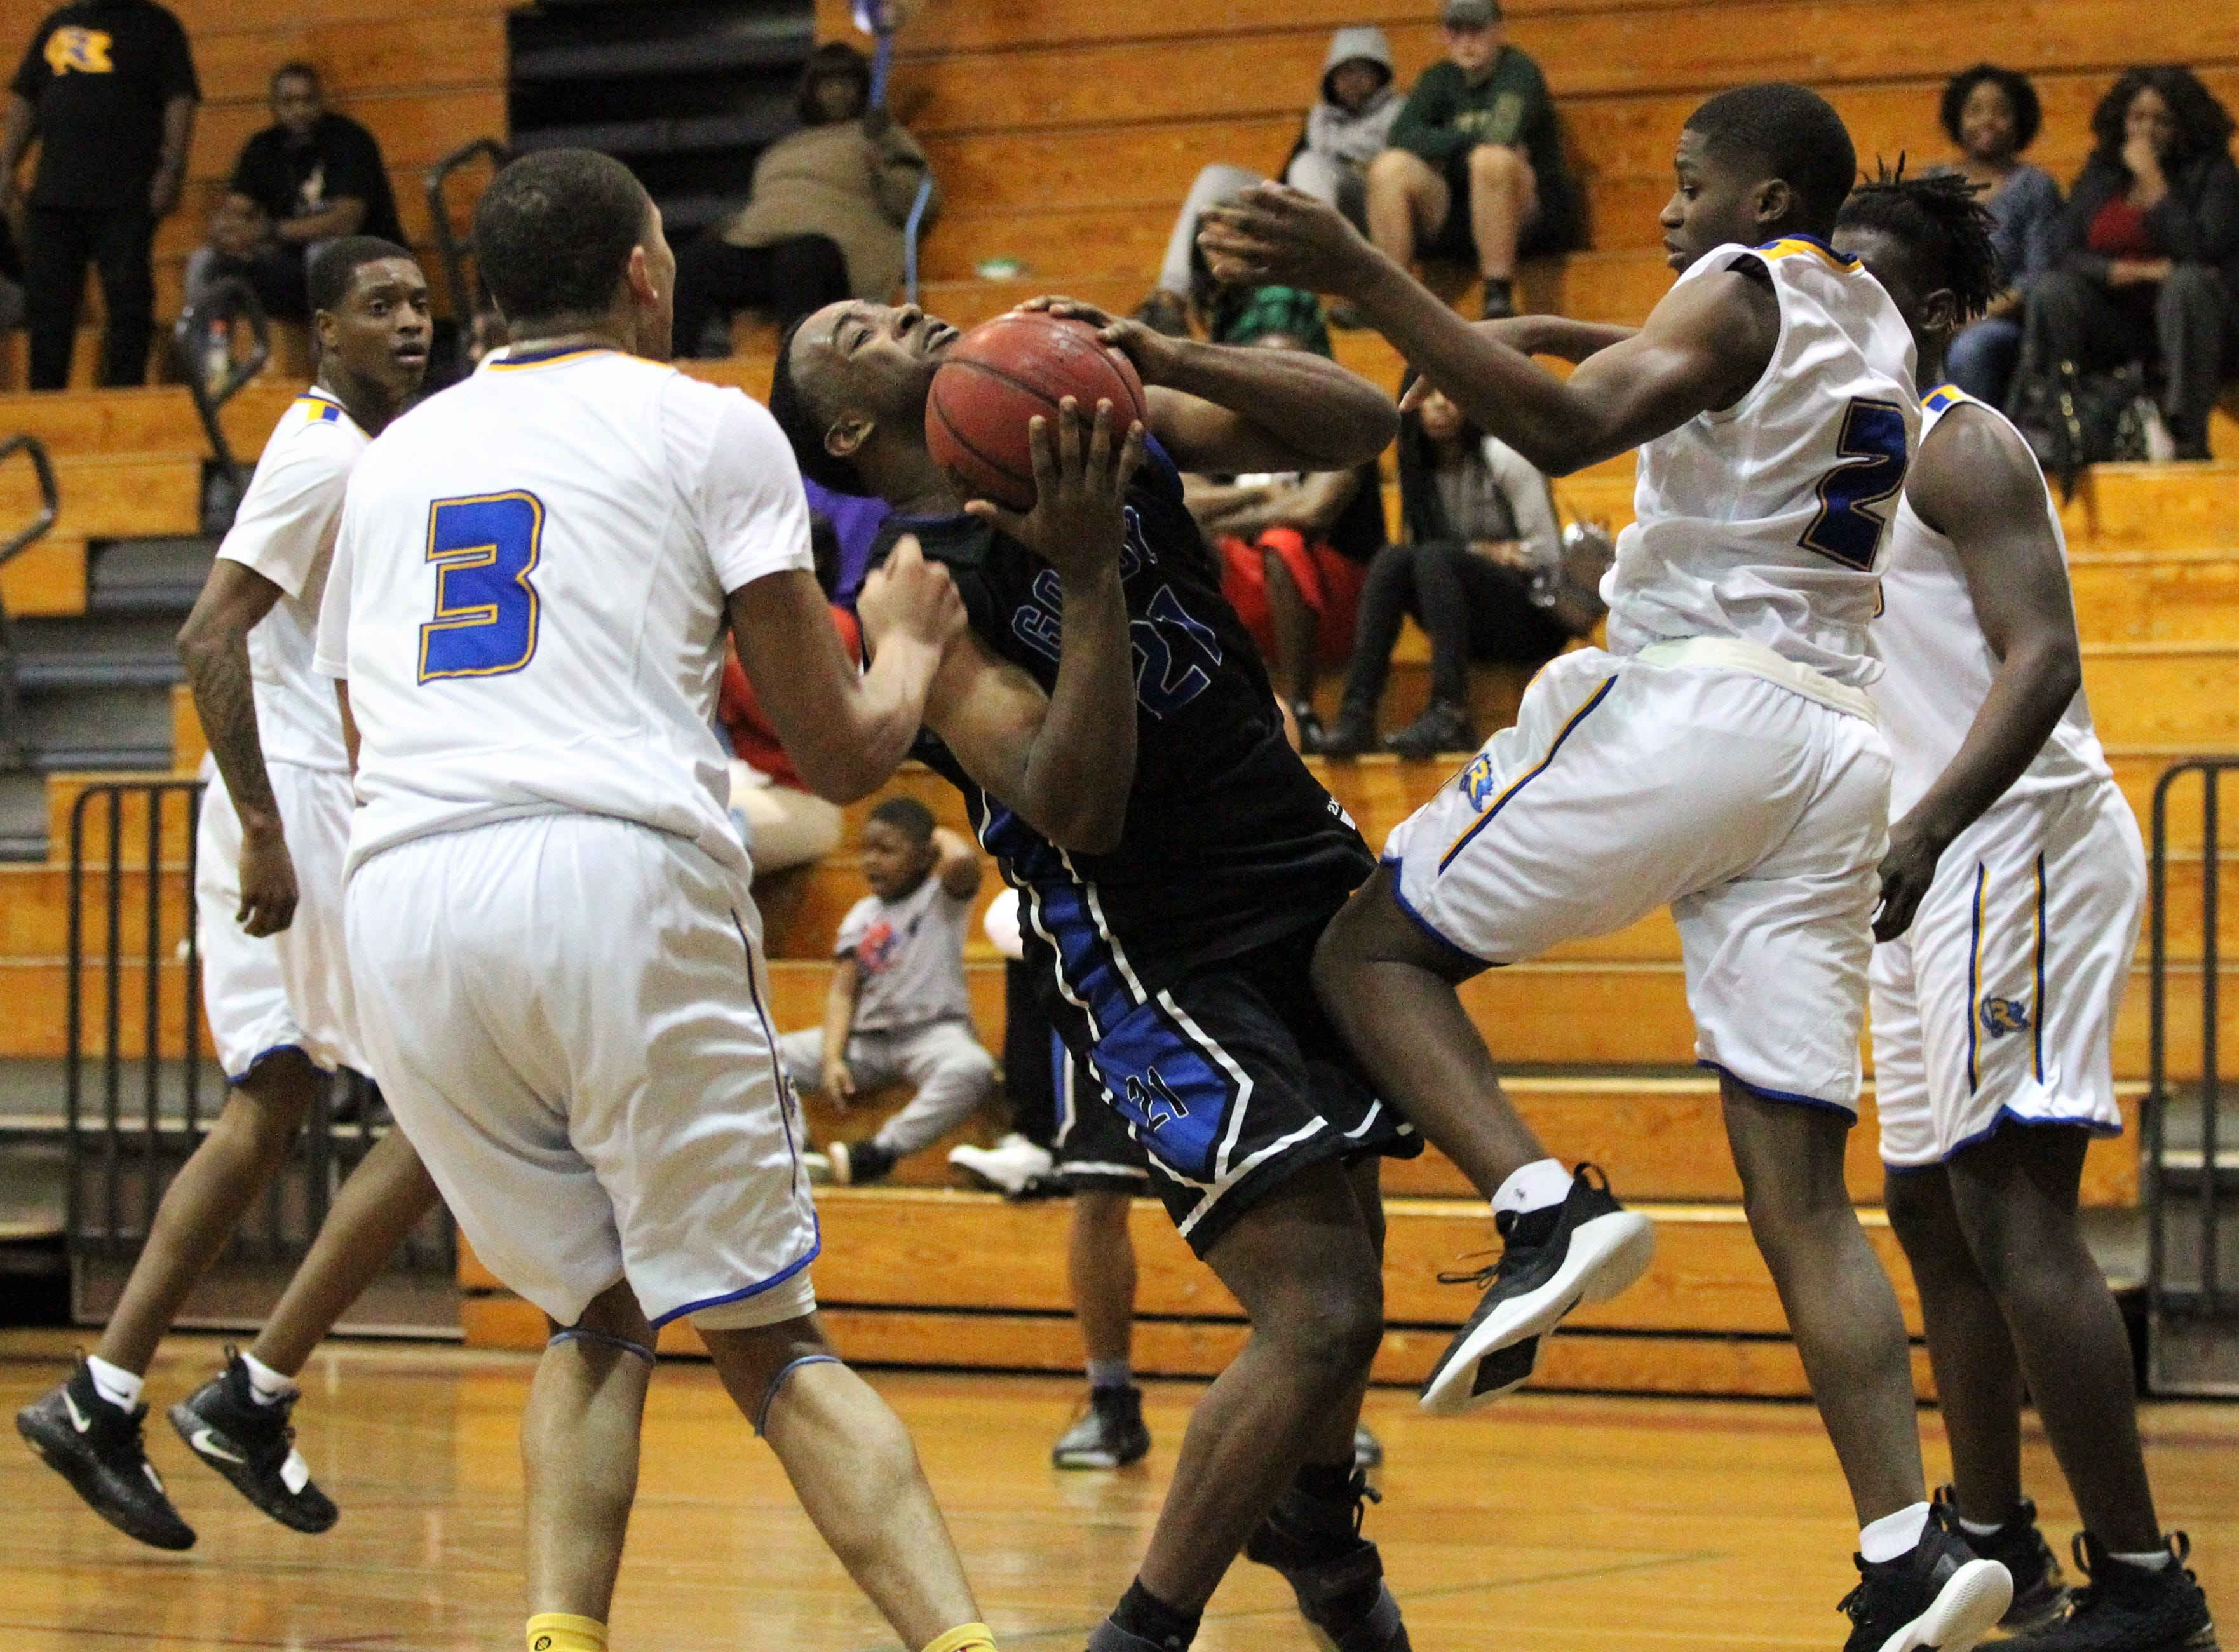 Godby's Kenneth Parker goes up for a layup amid contact as Rickards' boys basketball team beat Godby 58-47 during a District 2-6A championship game at Chiles on Feb. 15, 2019.